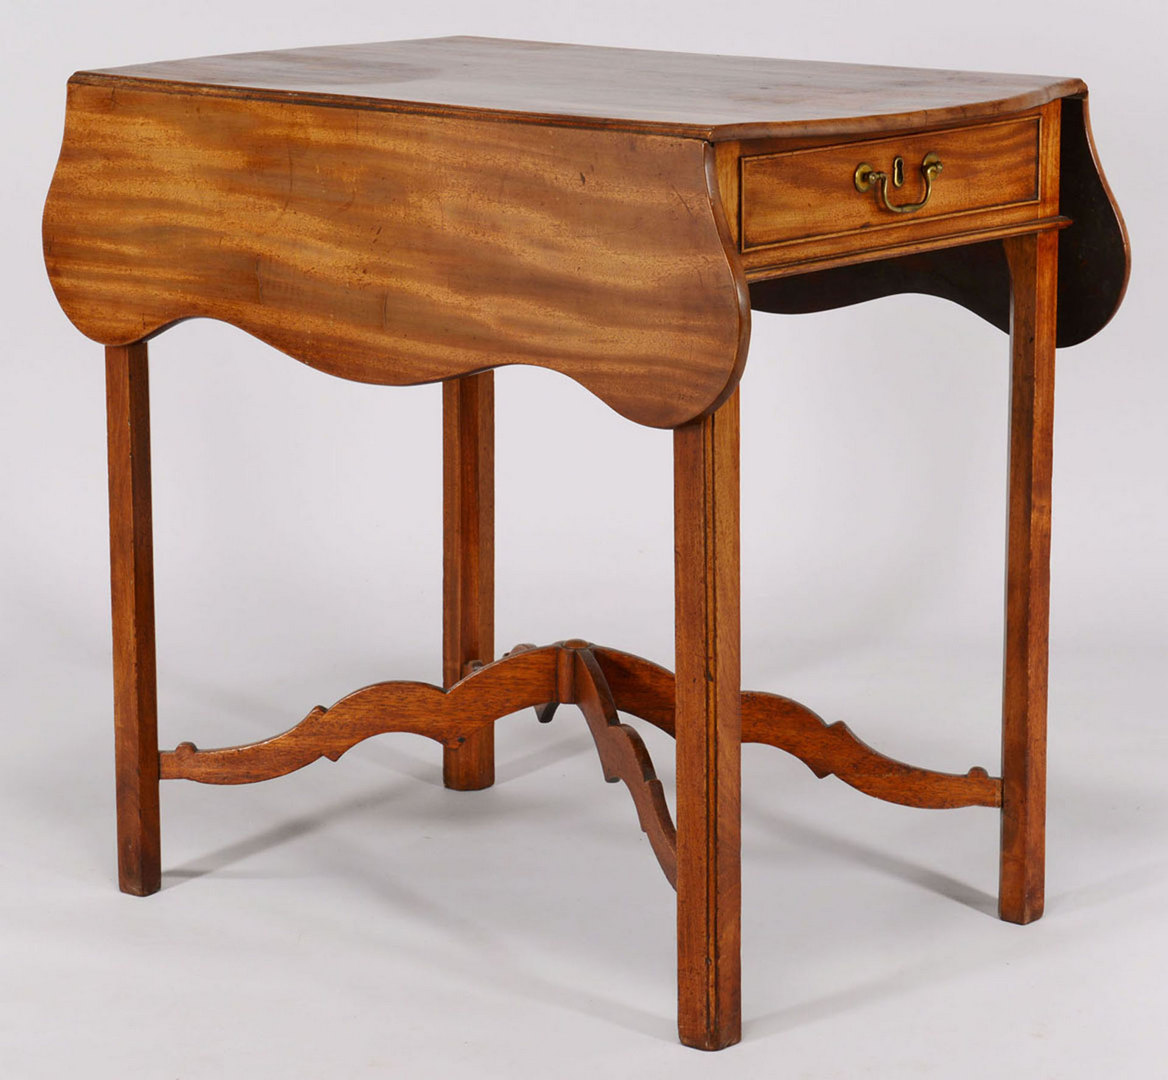 Lot 424: George III Pembroke Table with arched stretcher